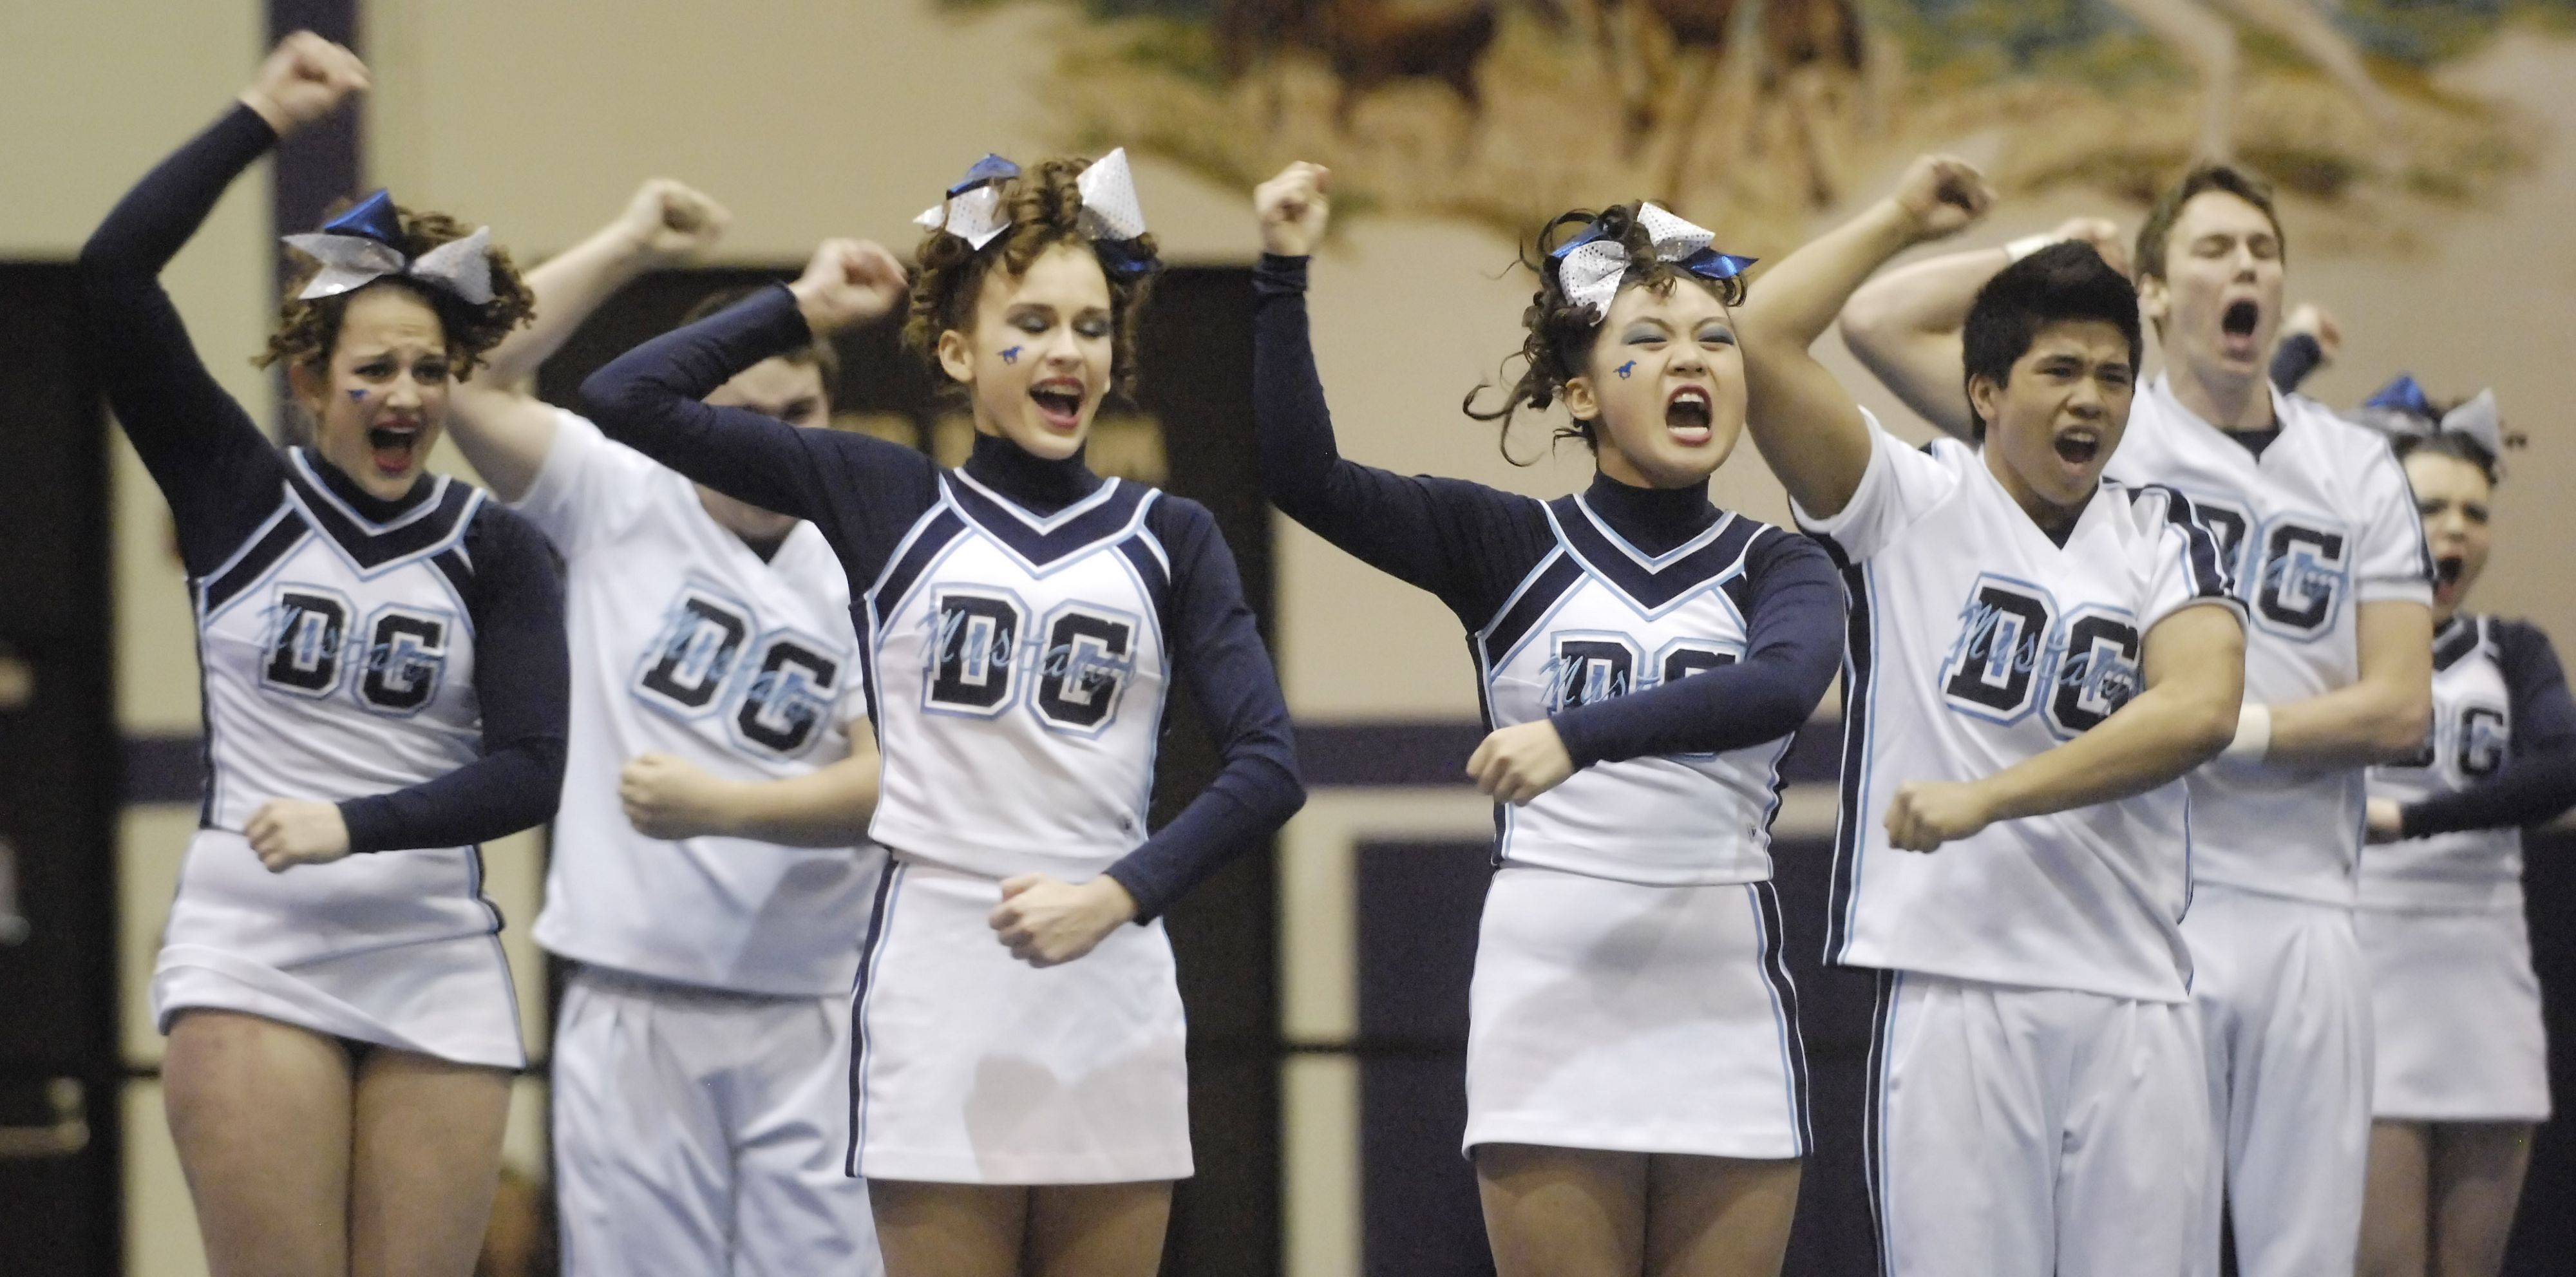 Downers Grove South competes during Saturday's cheerleading sectional hosted by Rolling Meadows High School.